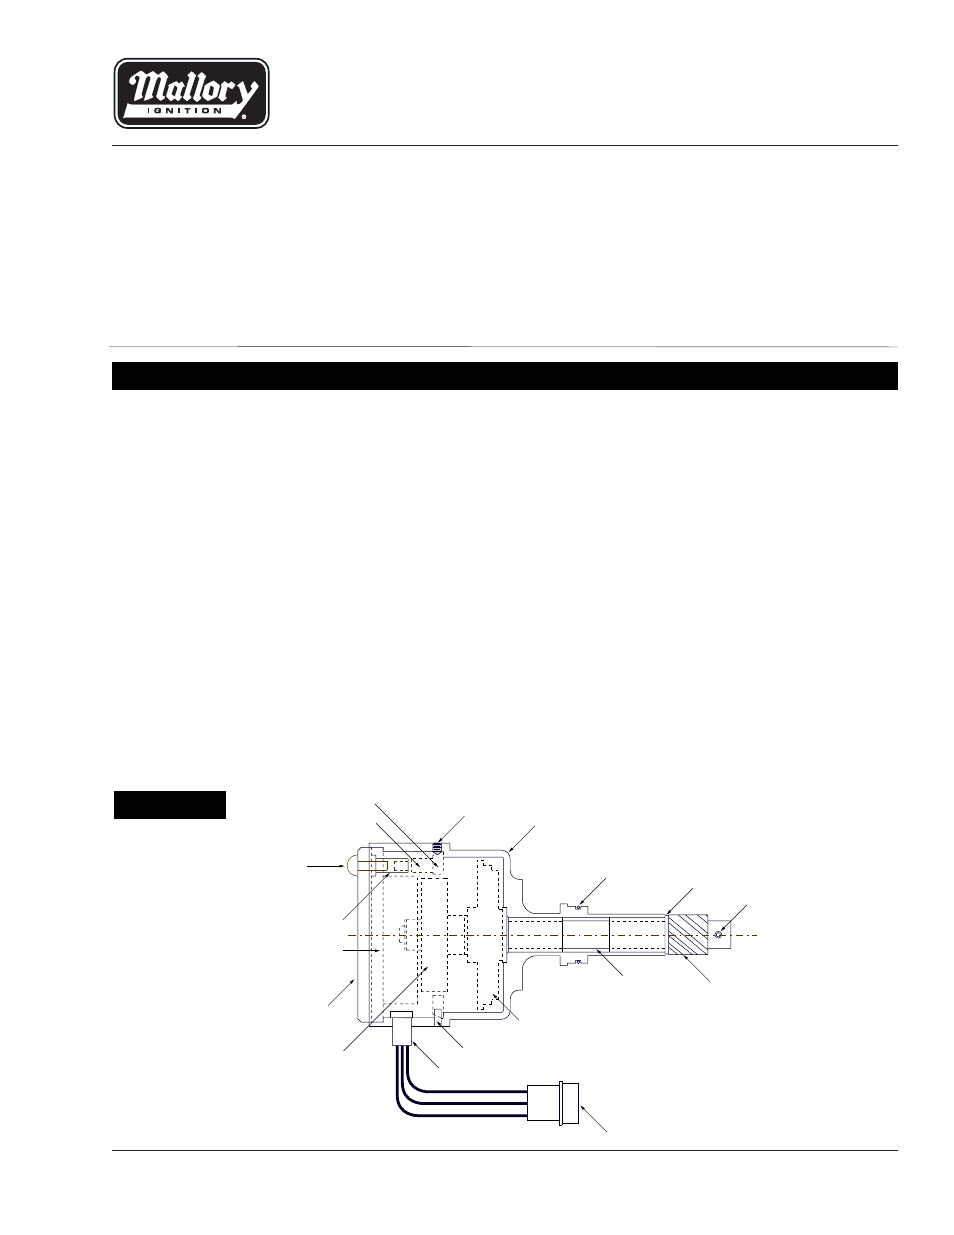 mallory ignition mallory unilite distributor 576 page1?resize\\\\\=665%2C861 mallory 5048201 wiring diagram wiring diagrams mallory unilite distributor wiring diagram at bakdesigns.co